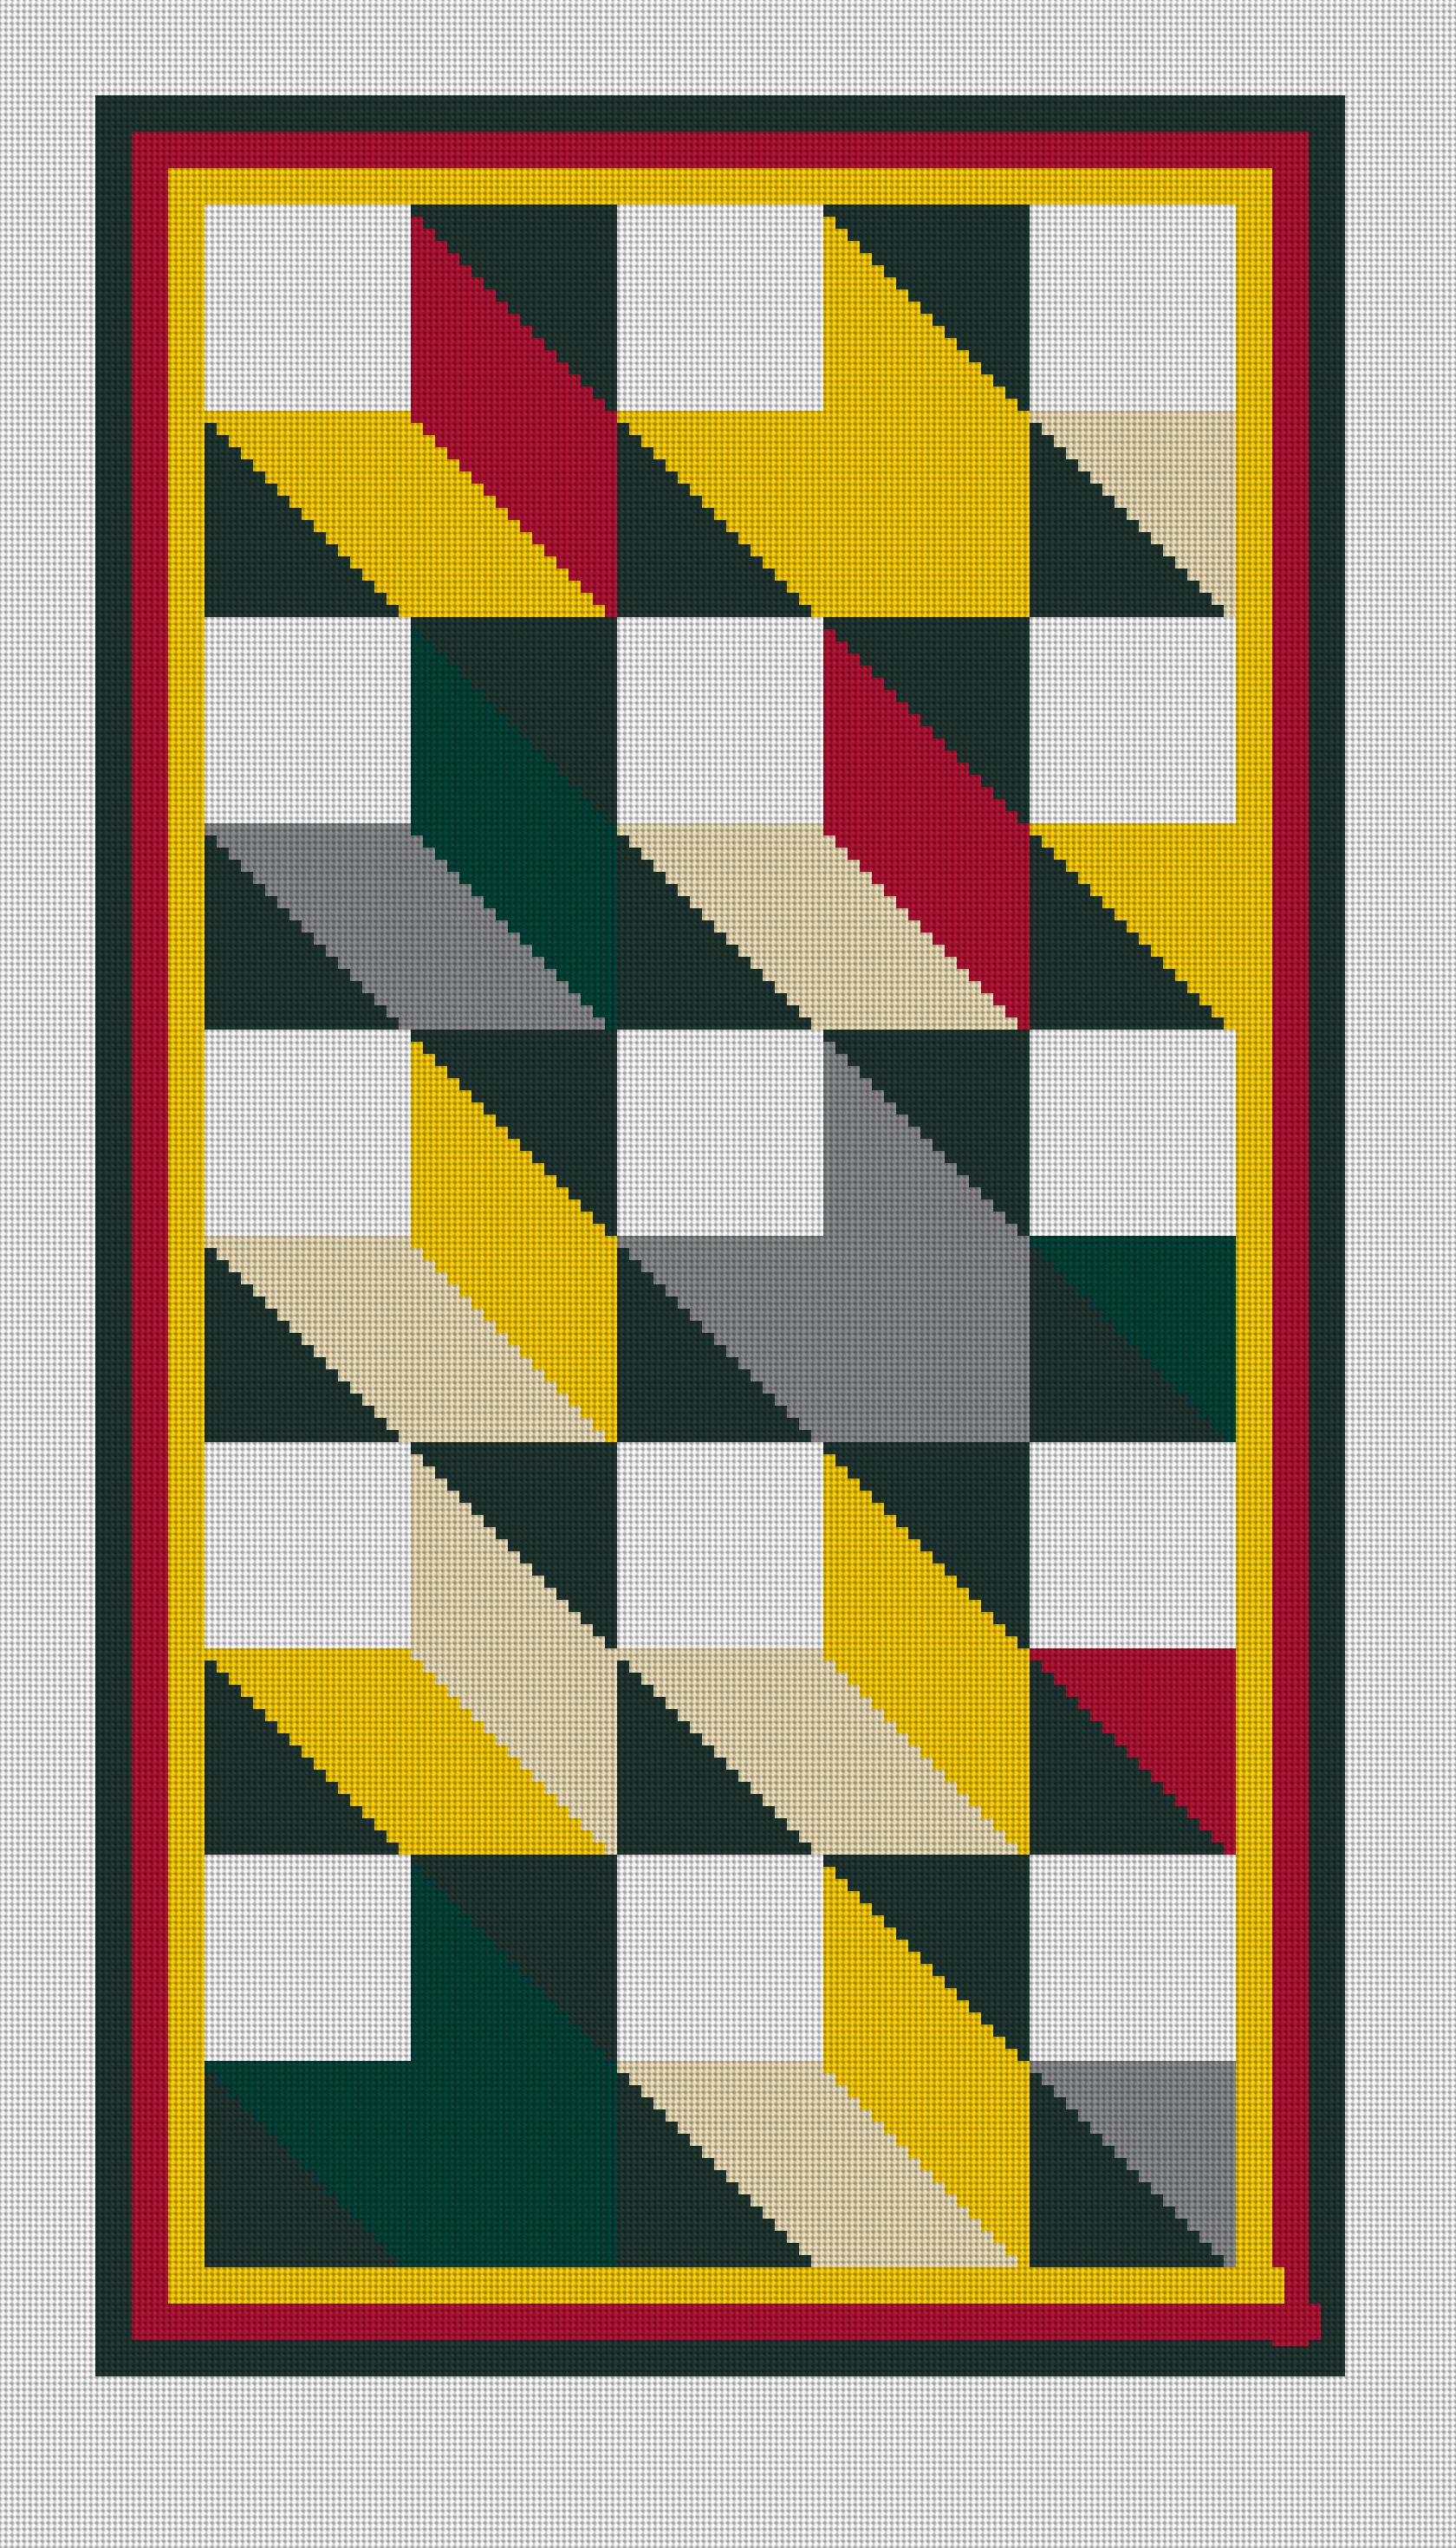 Mosaic Rug Needlepoint Rug | Needlepoint Kits And Canvas Designs